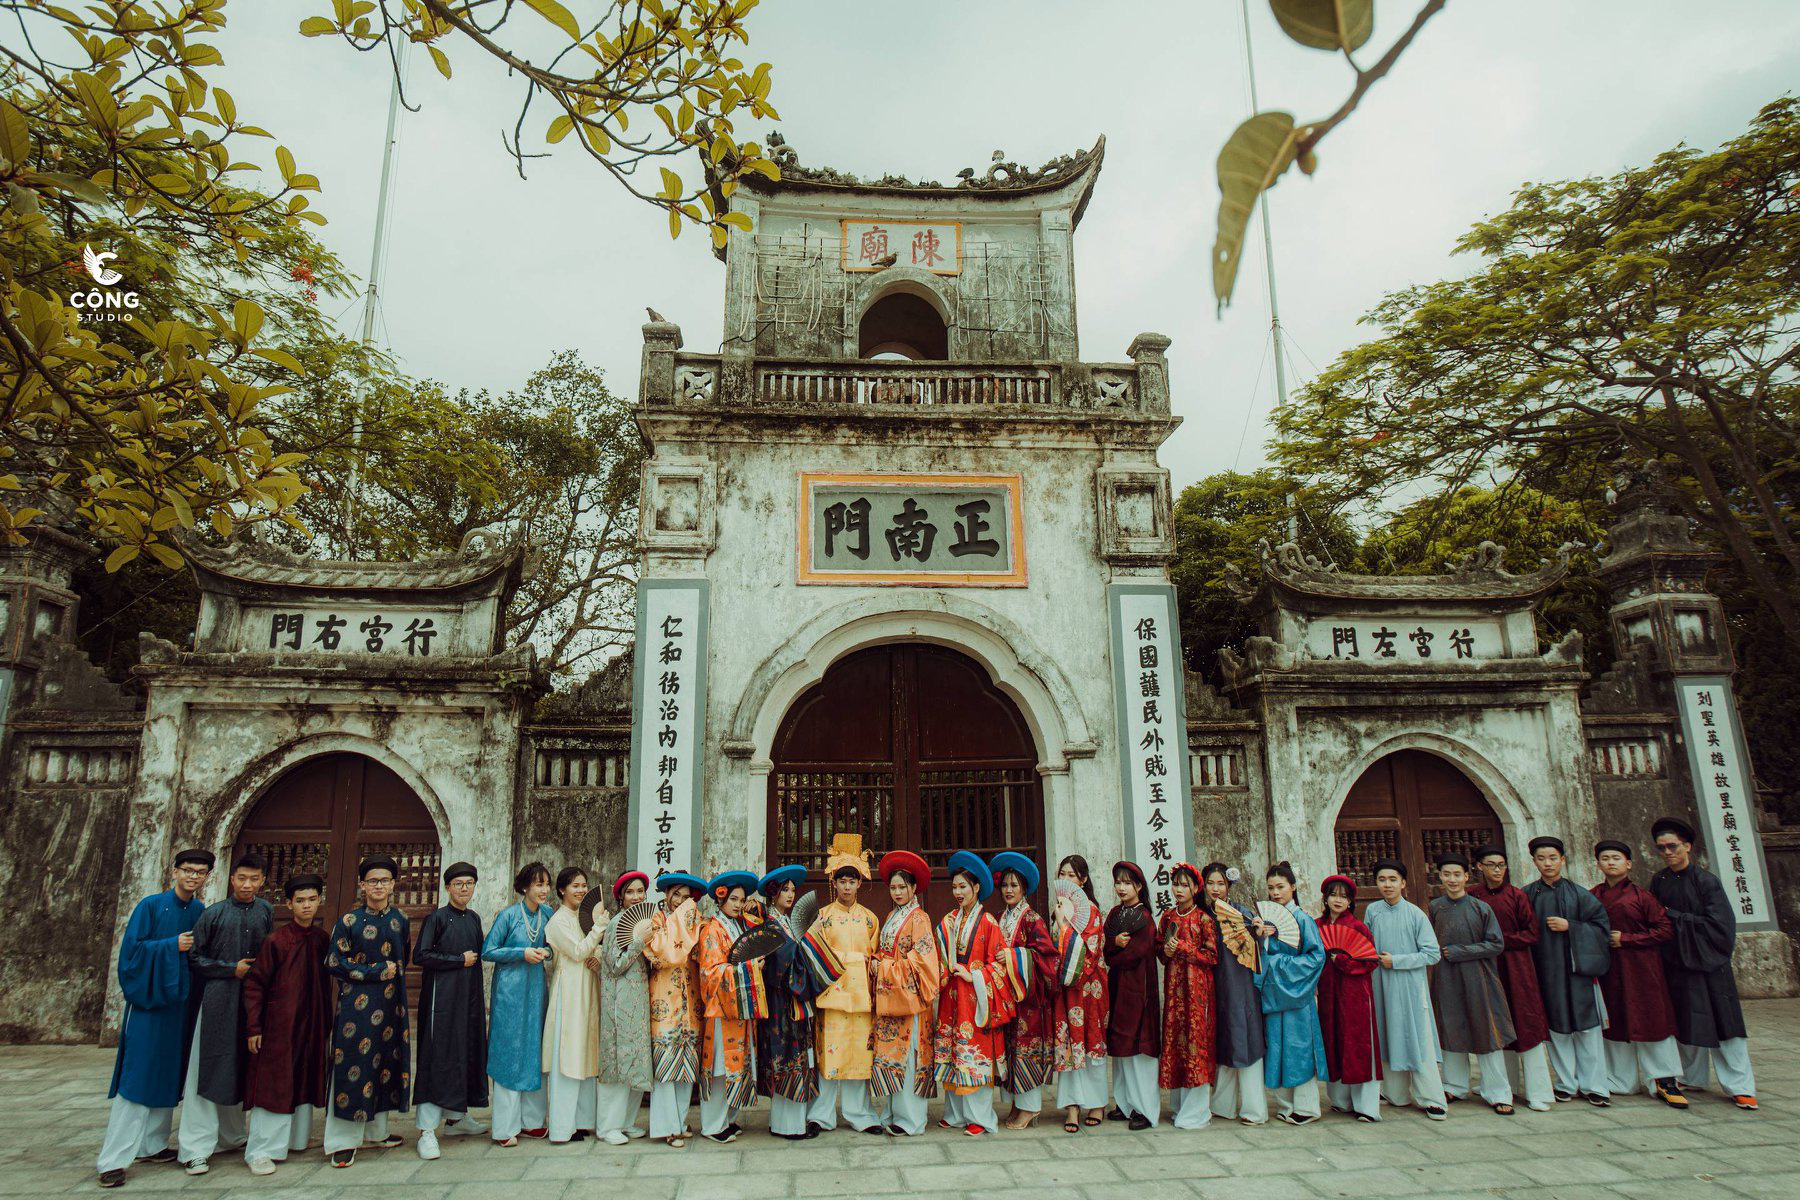 12th-grade French majors at the Le Hong Phong High School for the Gifted in Nam Dinh Province, Vietnam pose for a 'royal family photo' at the Tran Temple wearing ancient costumes in this supplied yearbook photo.